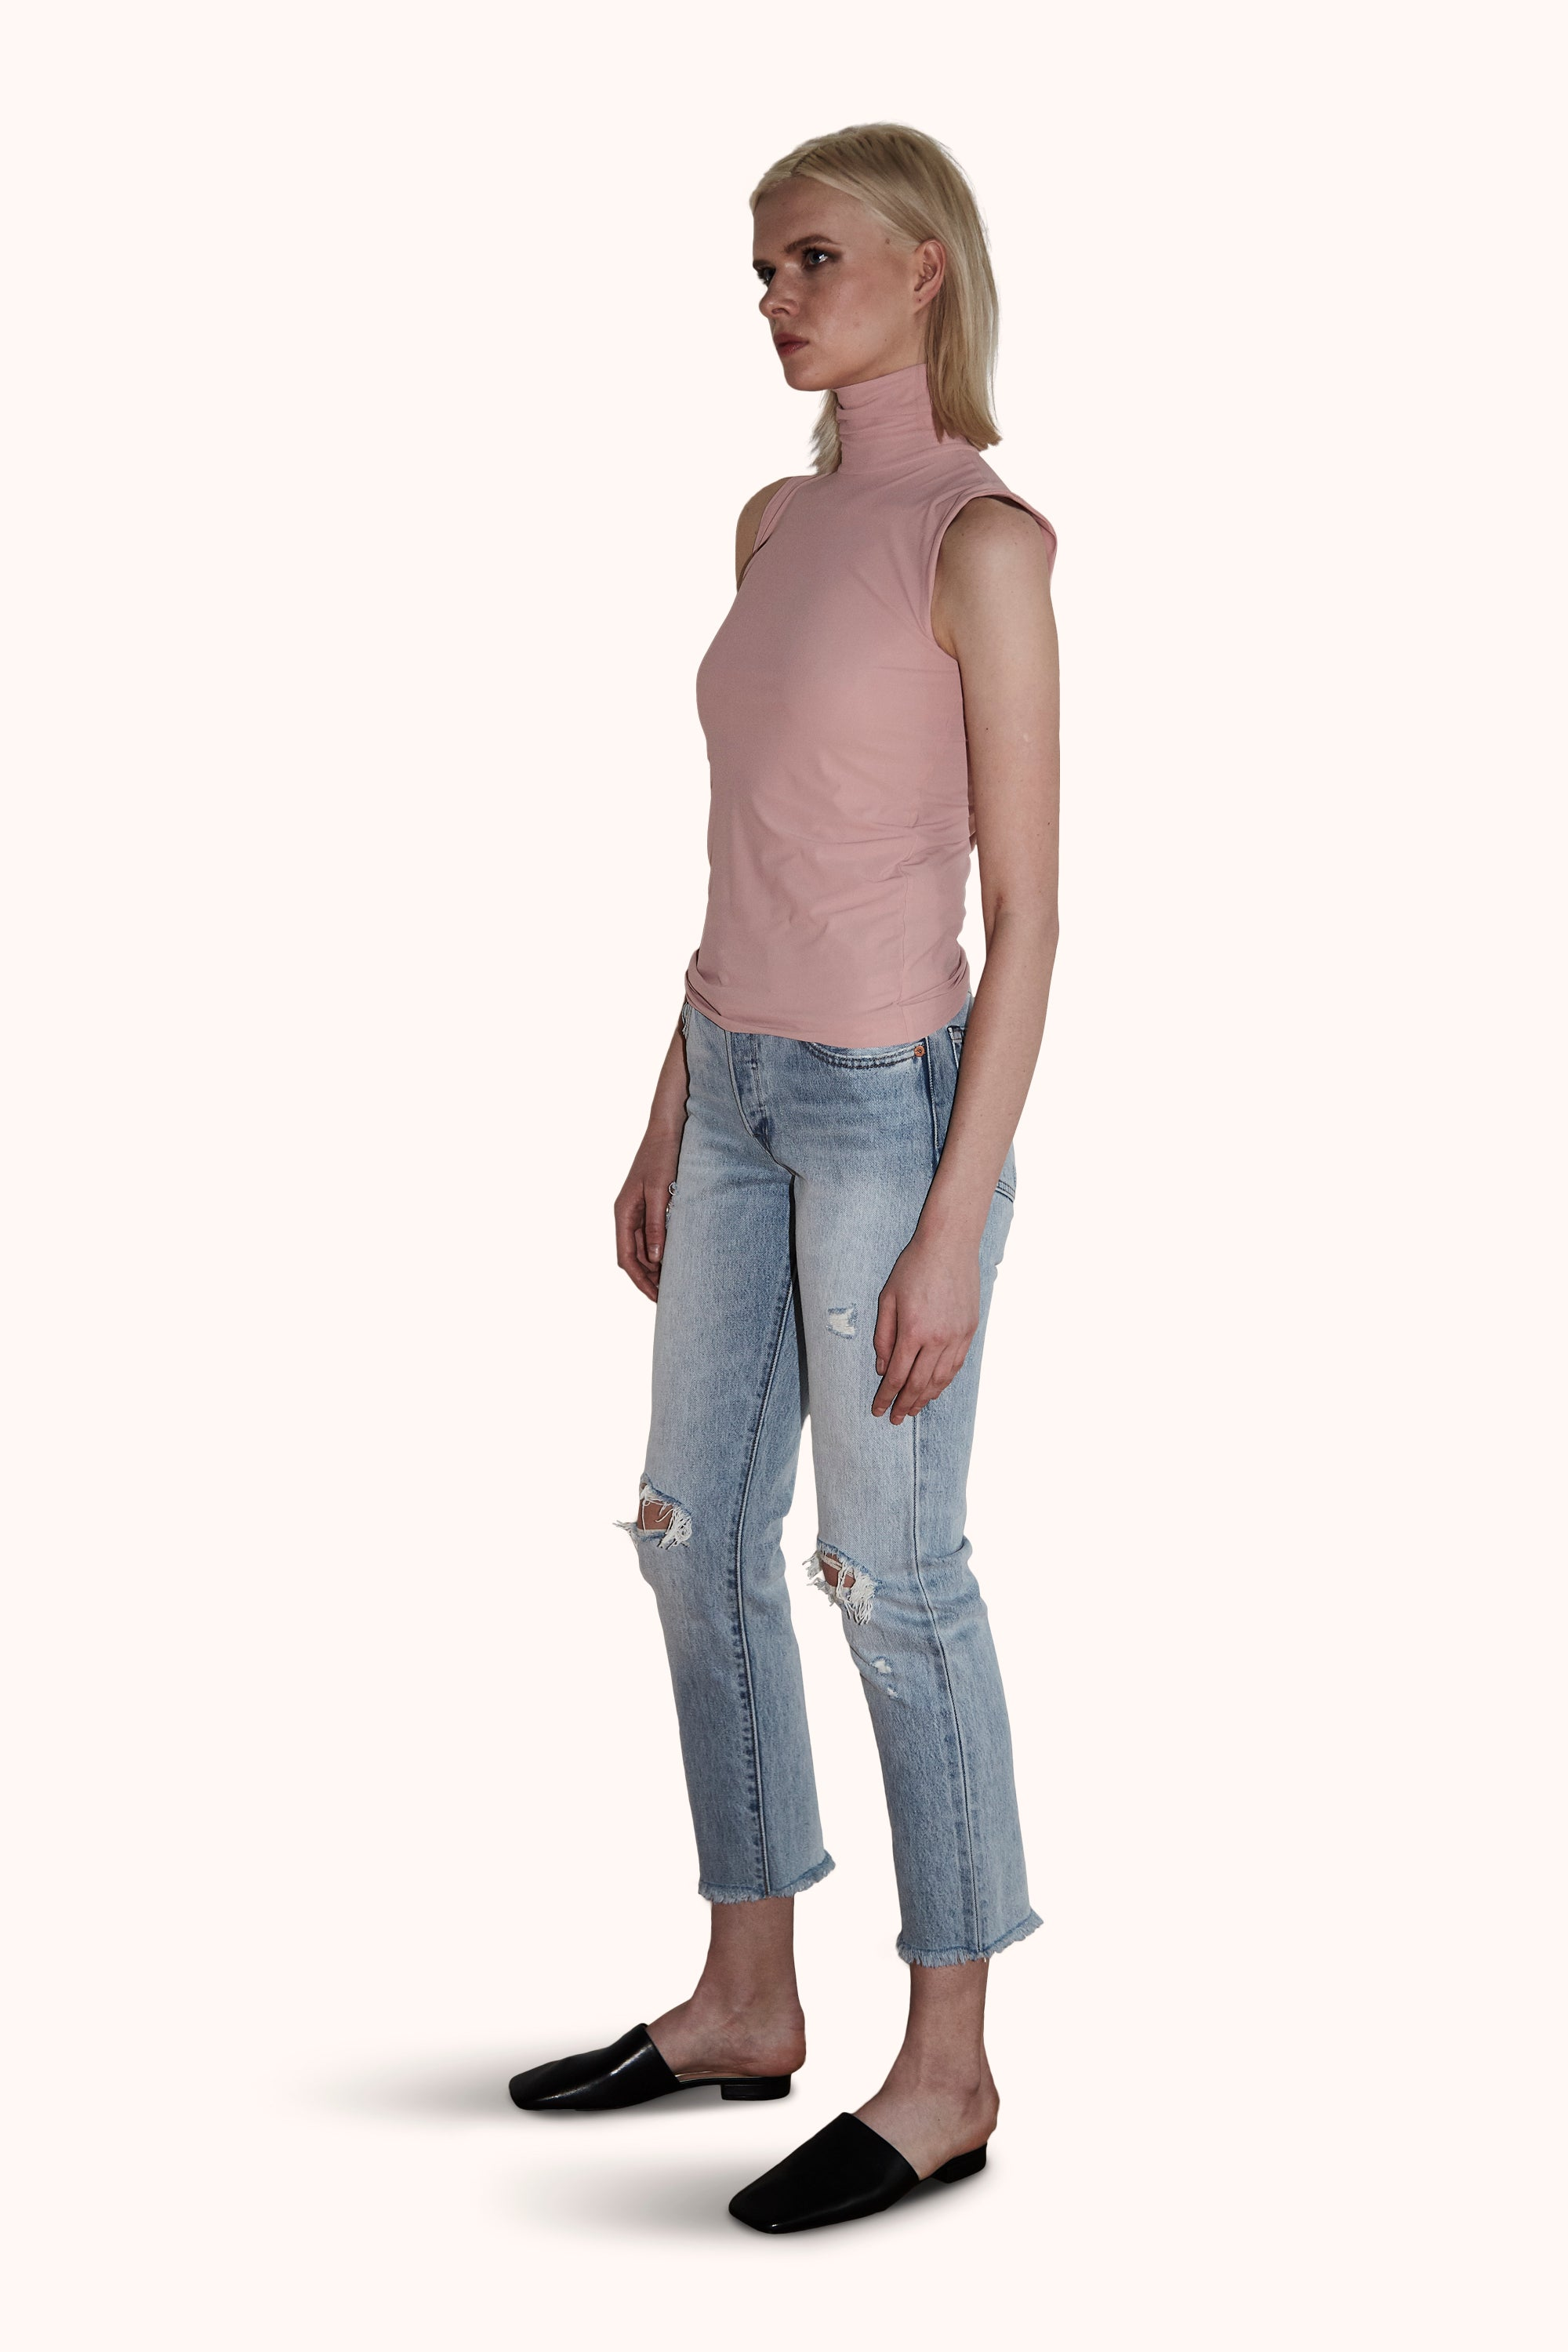 Nora Top in Modern Pink